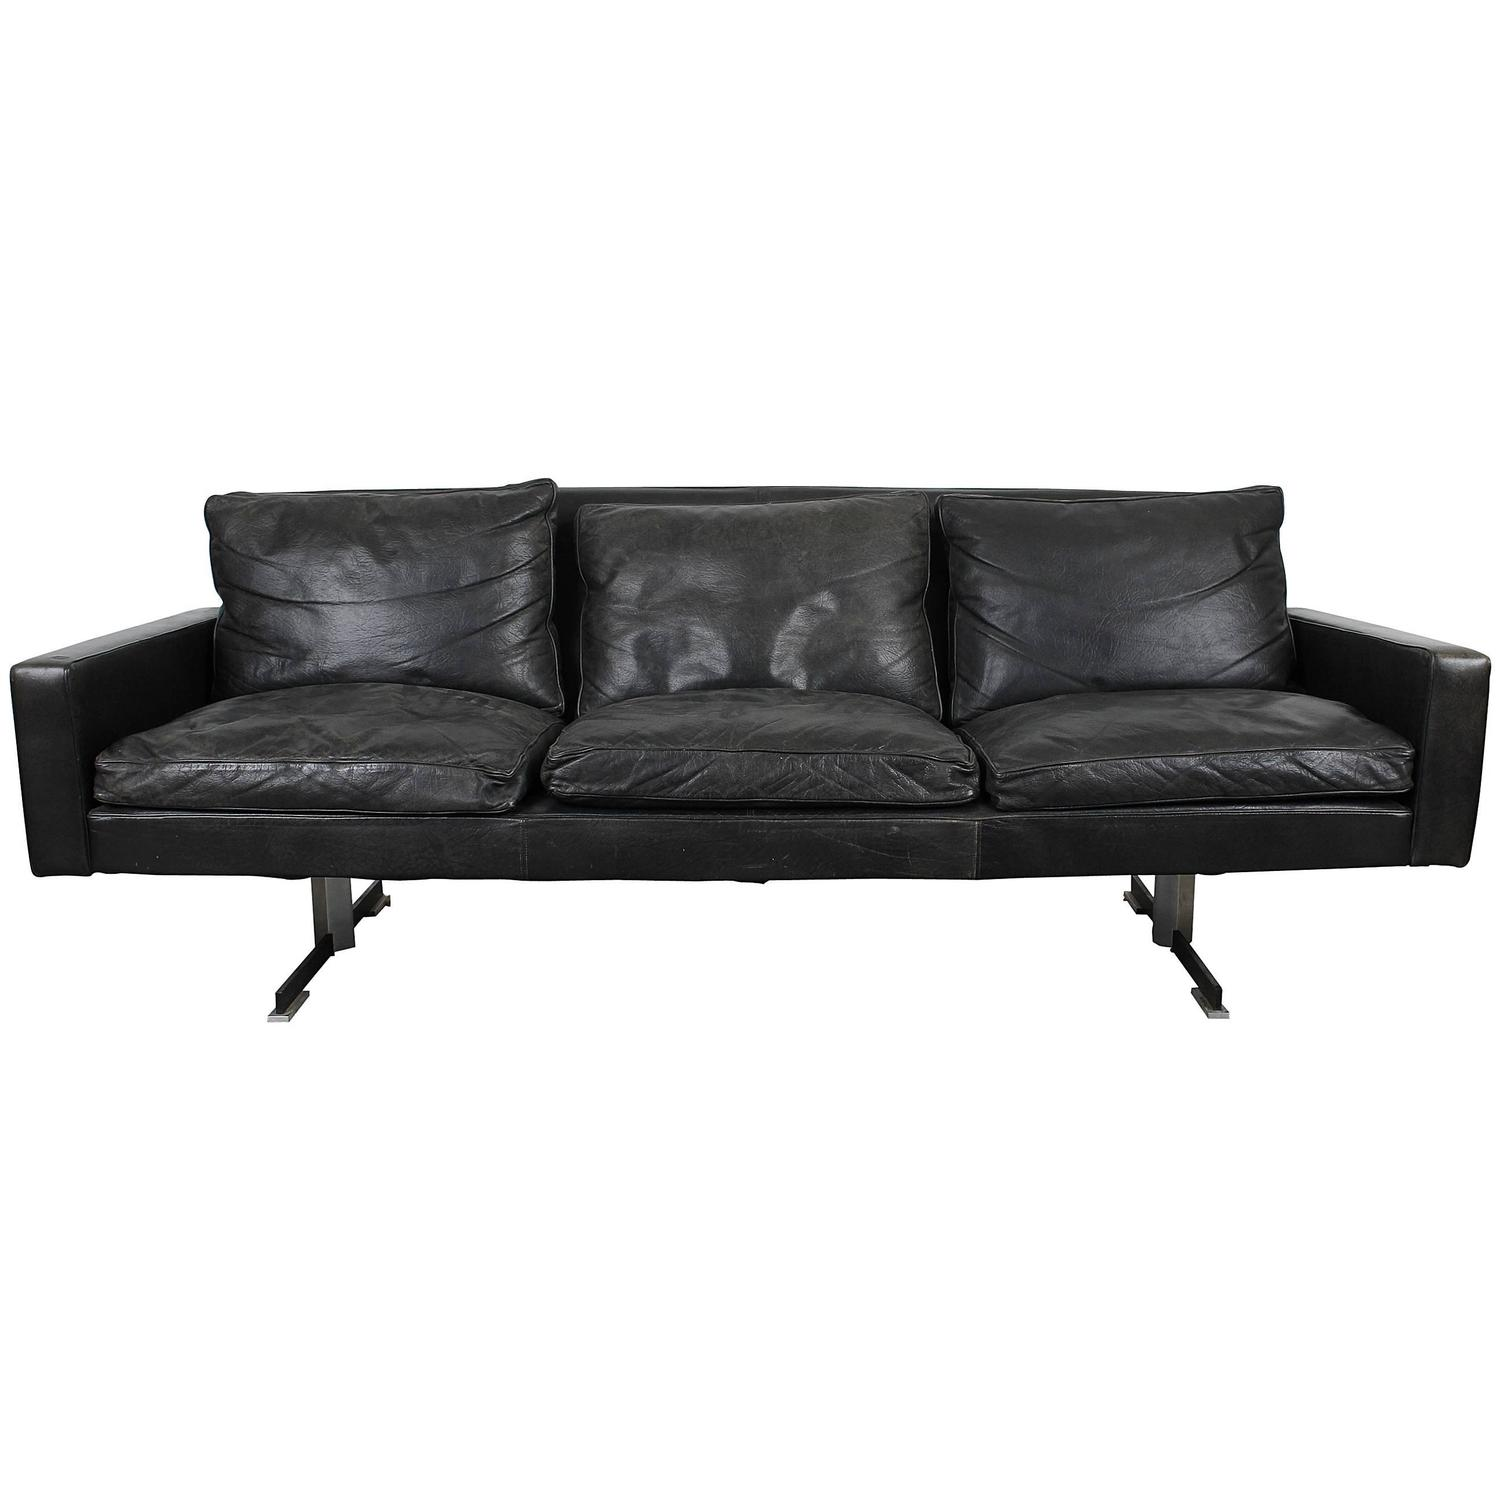 Mid-Century Modern Black Leather Sofa with Chrome Legs at ...